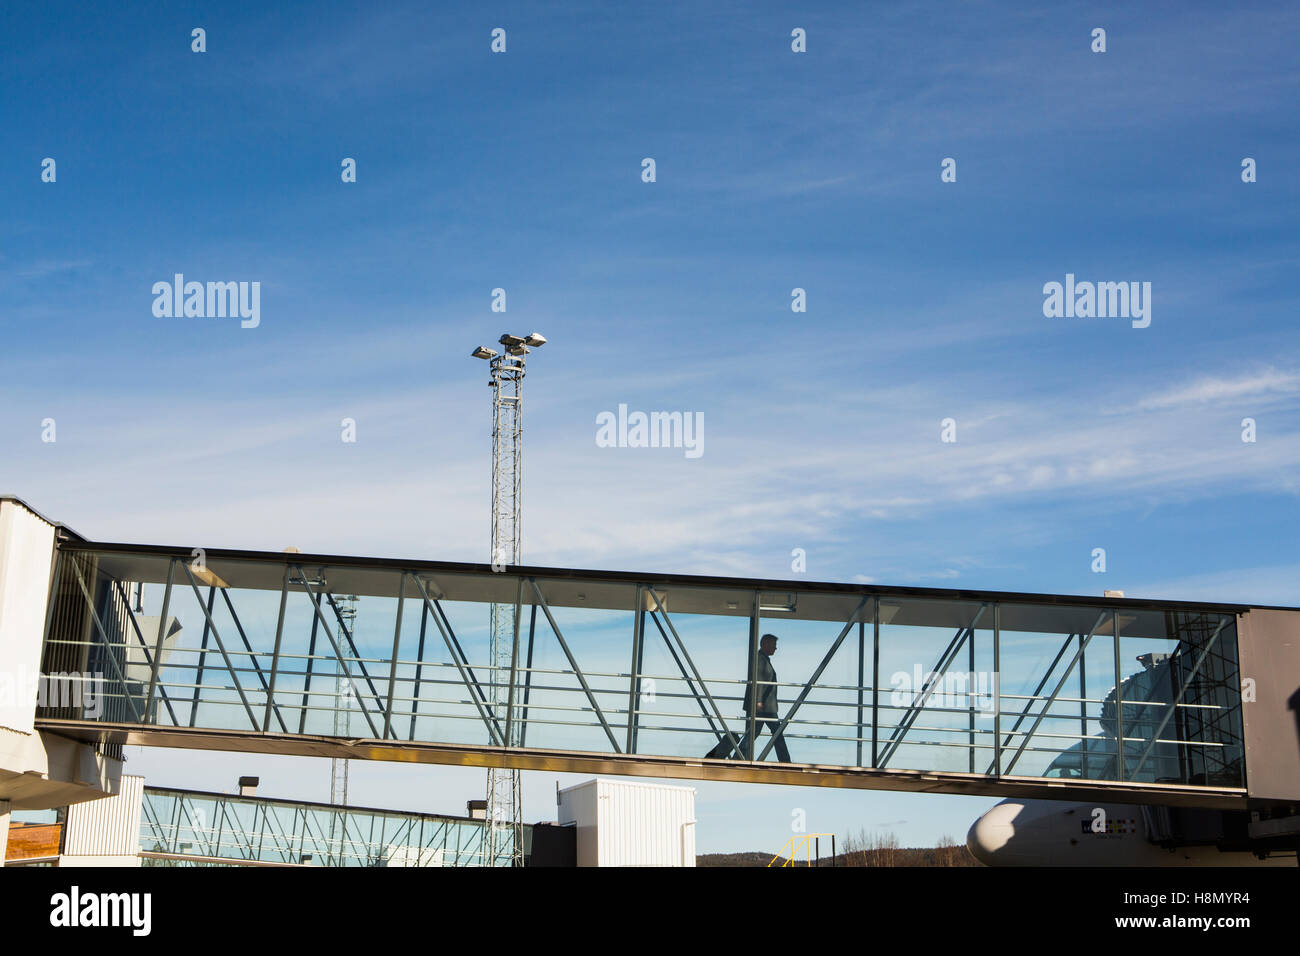 Elevated walkway at airport - Stock Image